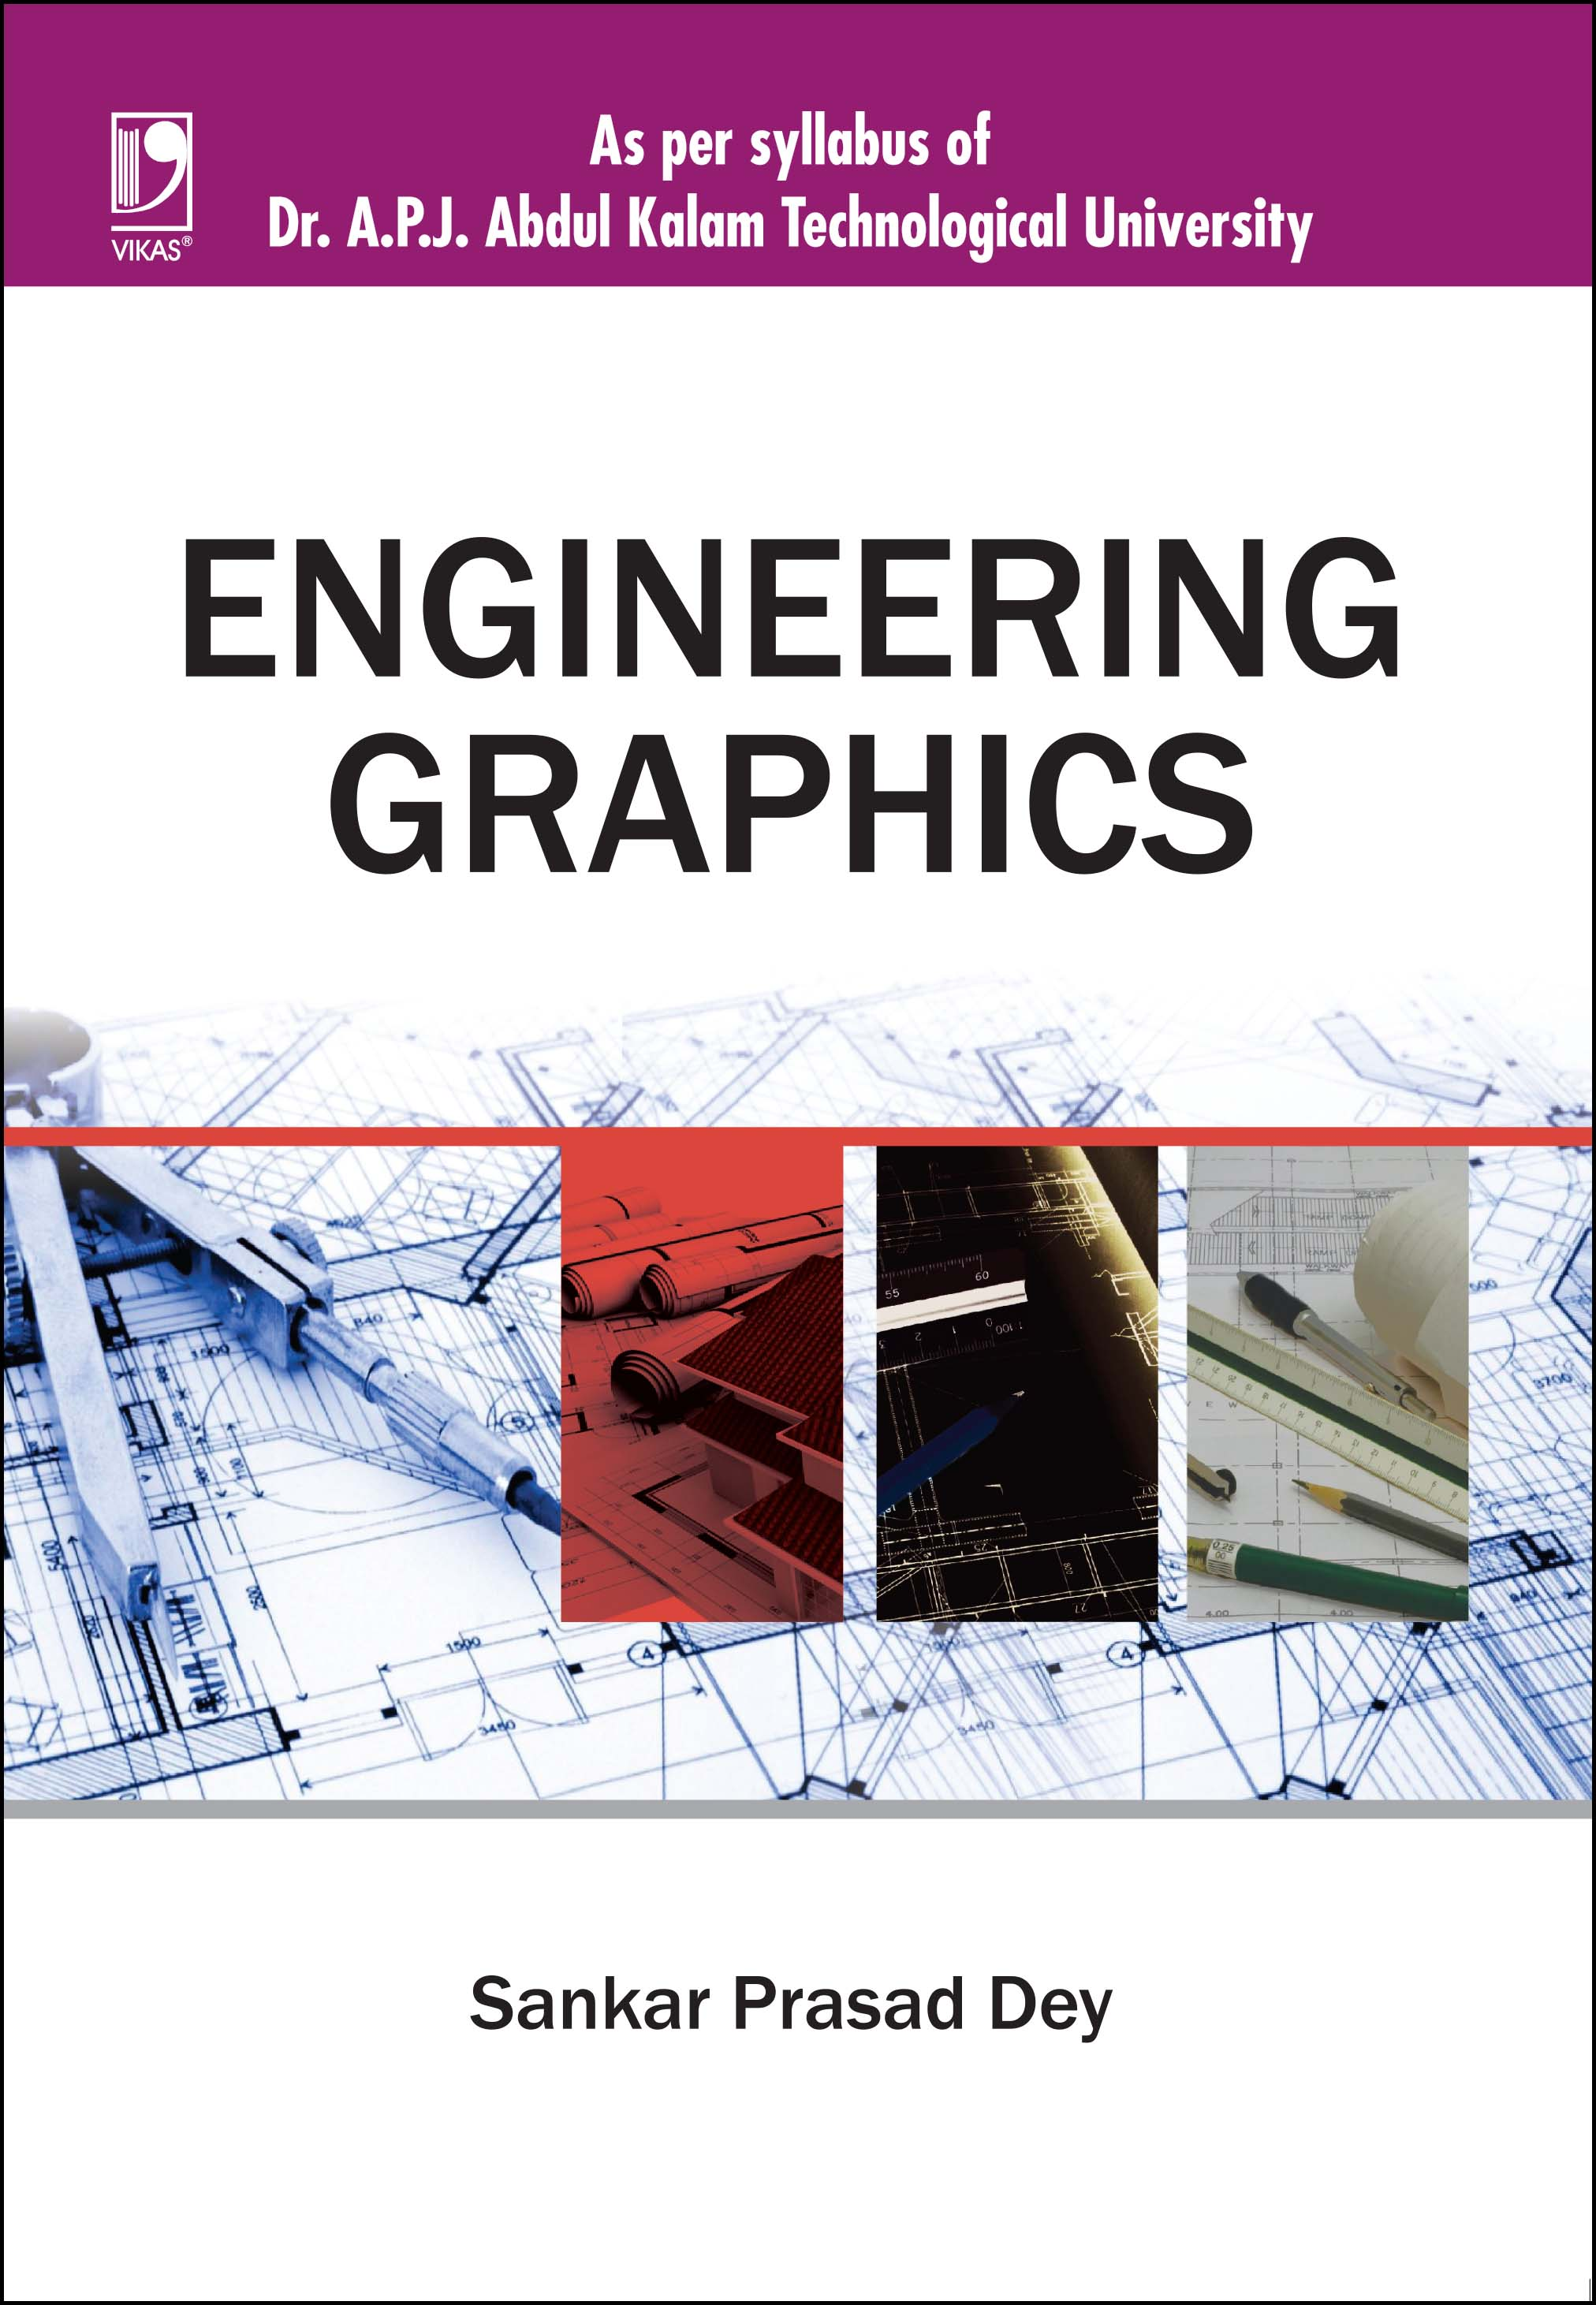 ENGINEERING GRAPHICS: (FOR DR. A.P.J. ABDUL KALAM TECHNOLOGICAL UNIVERSITY) by  SANKAR PRASAD DEY